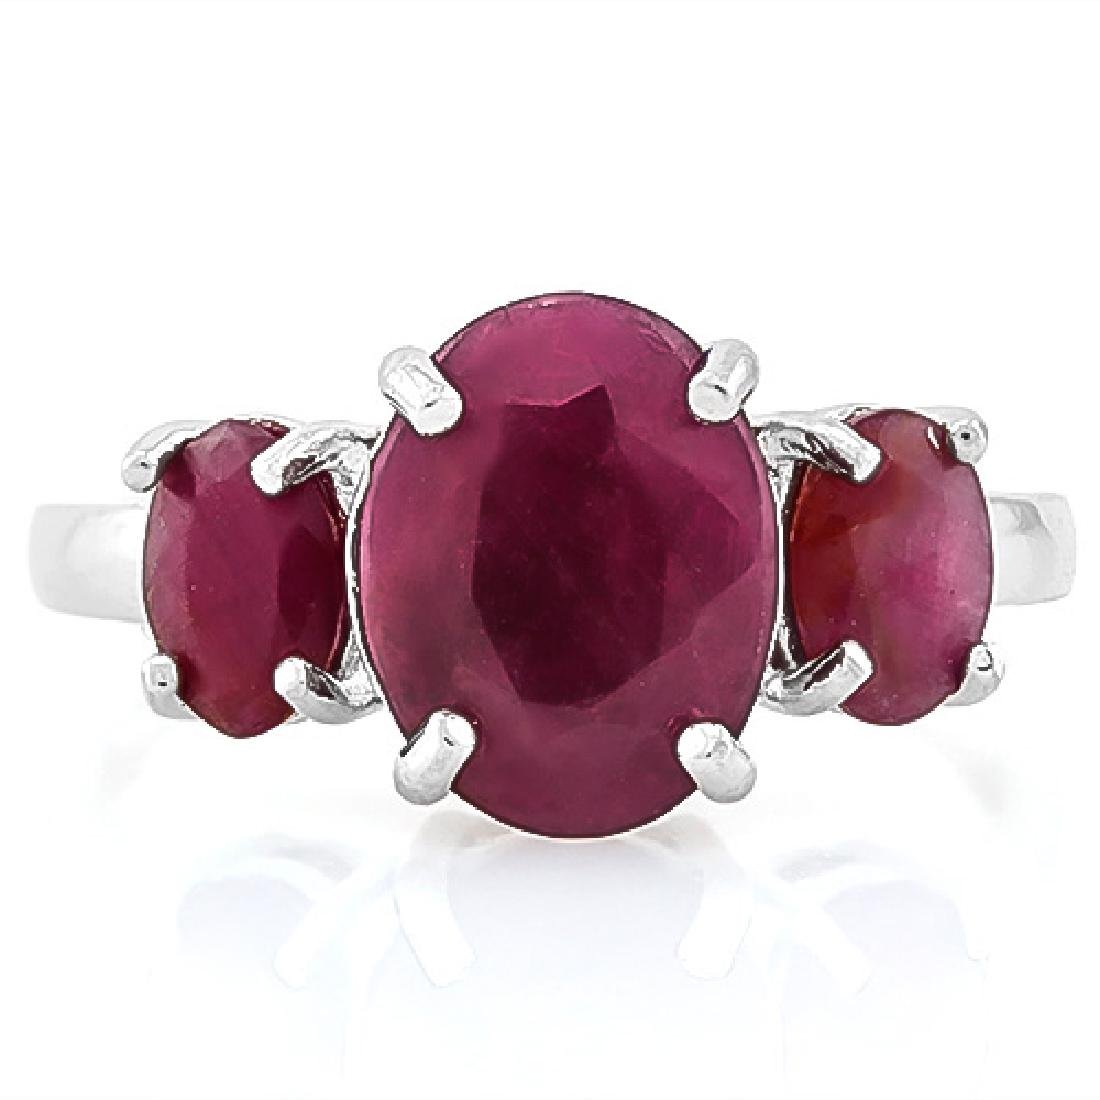 5 3/4 CARAT RUBY 925 STERLING SILVER RING